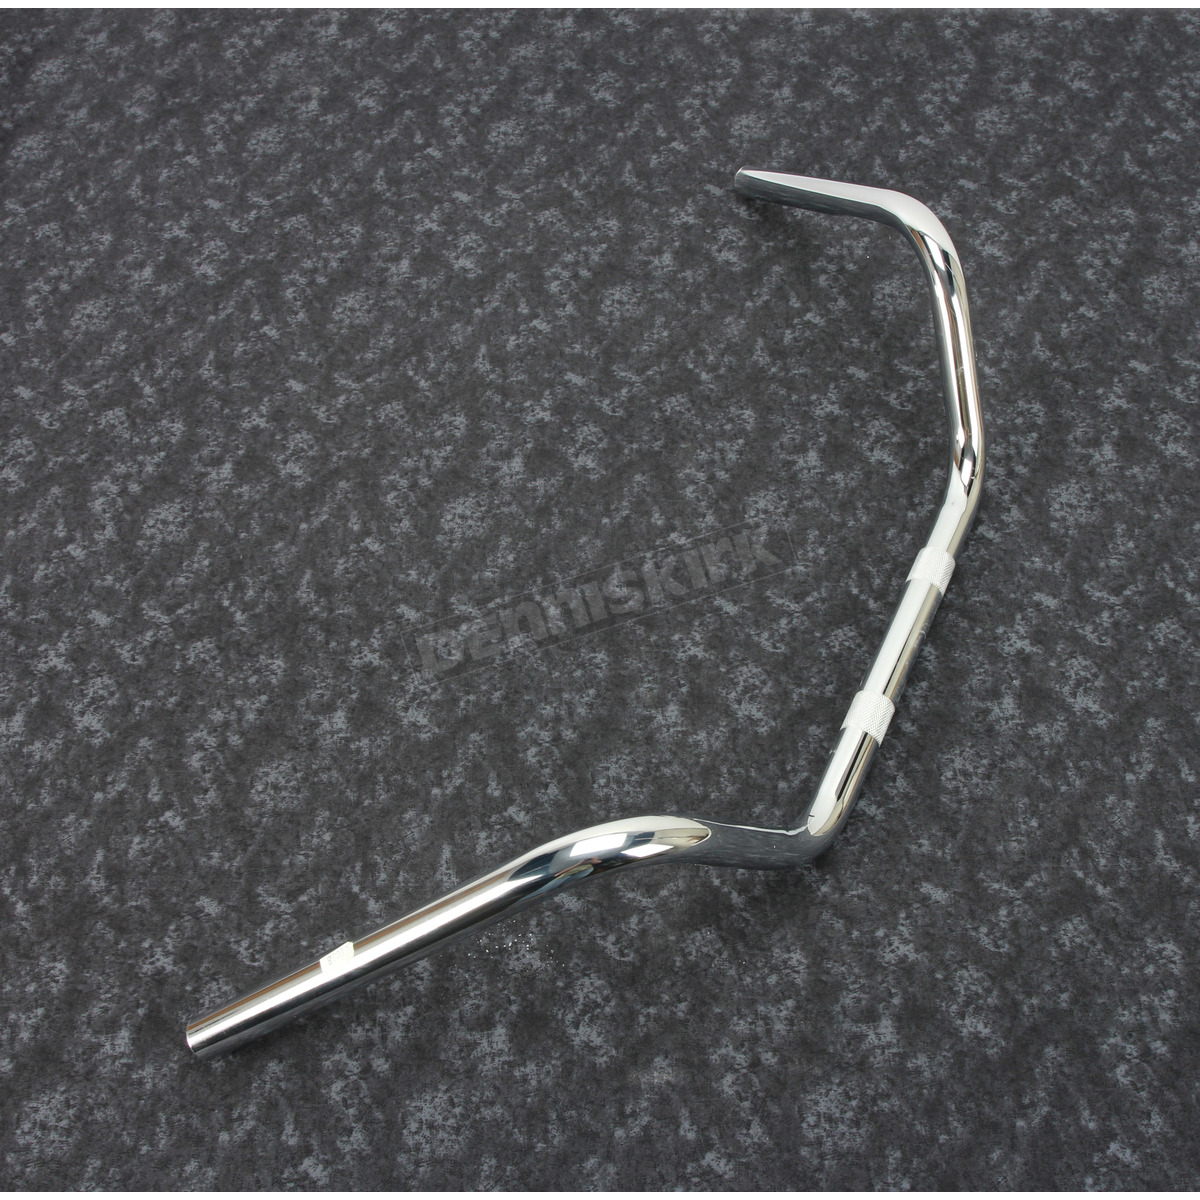 Replacement Handlebar Khrome Werks Chrome 300038 1in